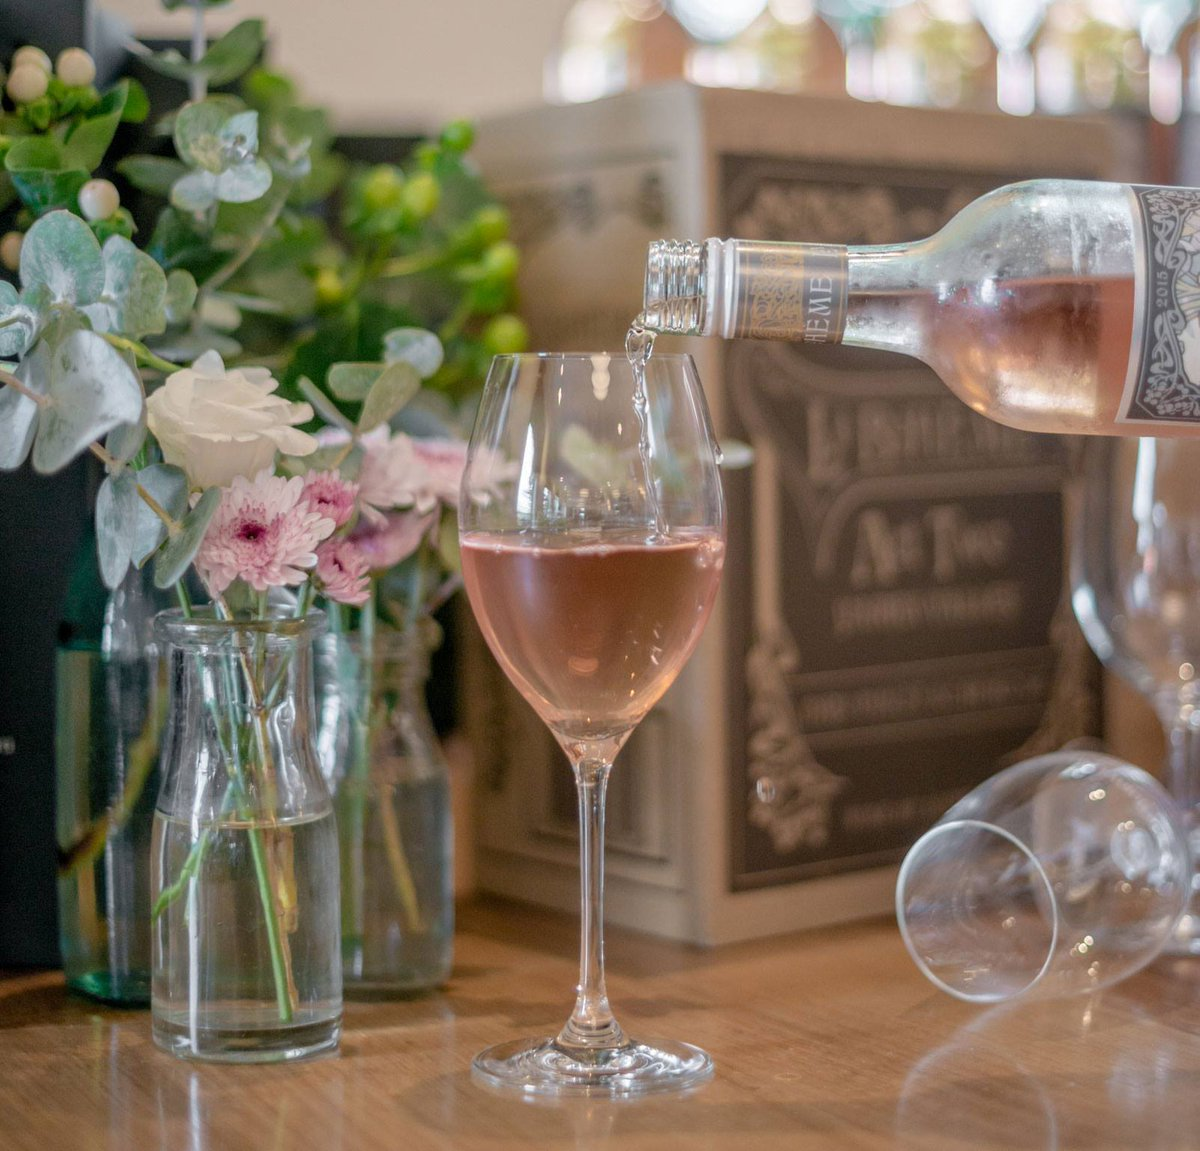 It's International Rosé Day this Sunday! Visit our Yarra Valley Estate 11-15 Aug & enjoy special offers on Rosé. https://t.co/8z9tpT9Y8x